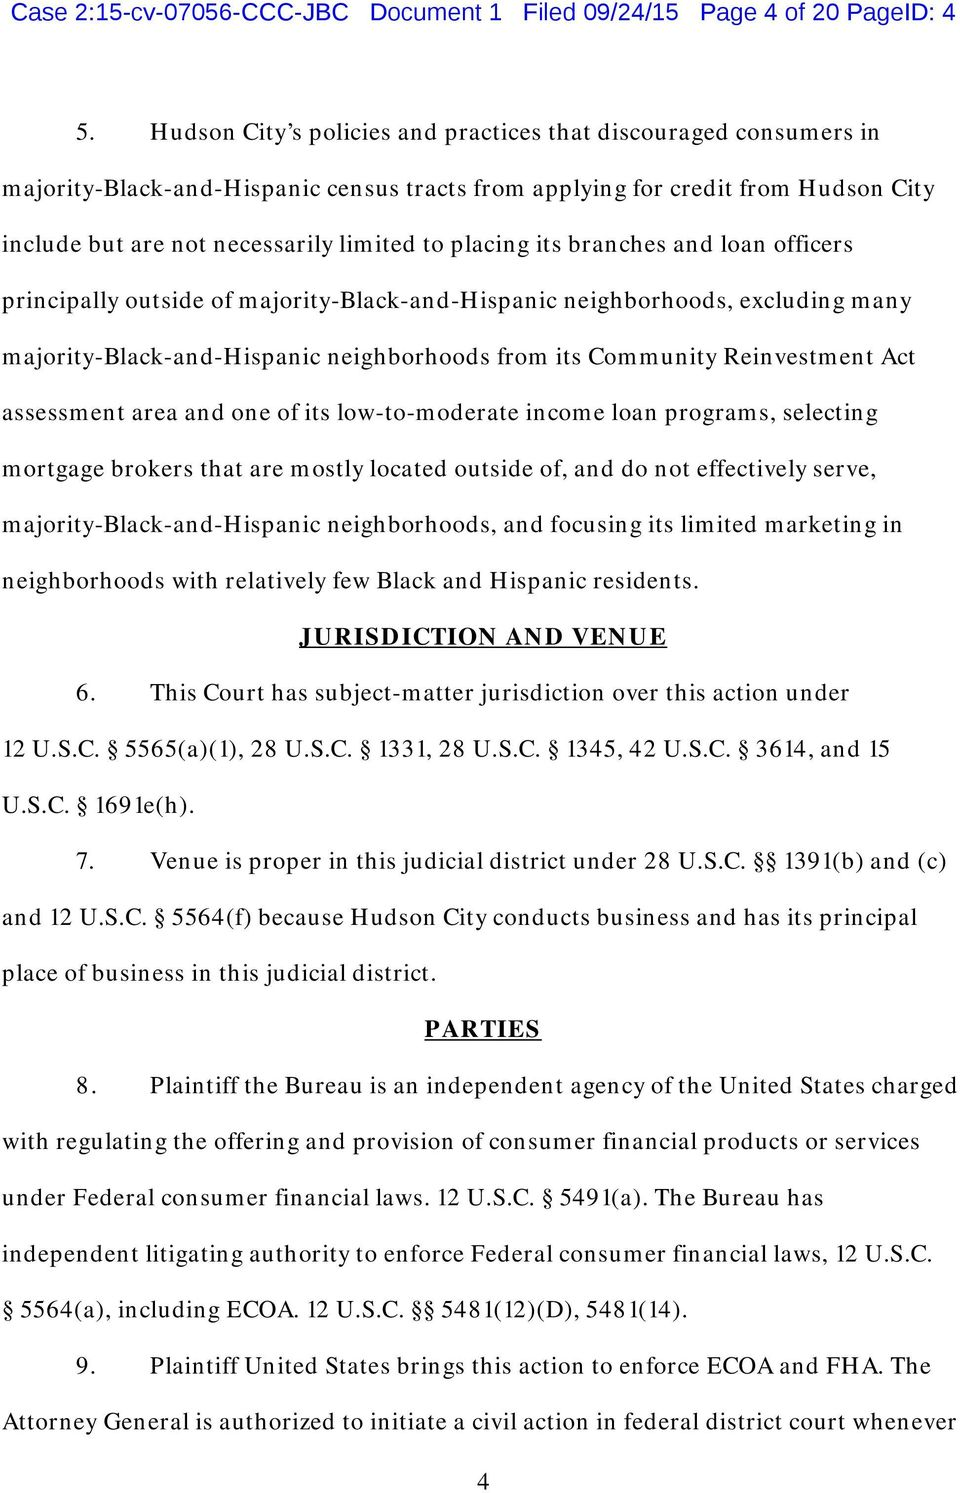 placing its branches and loan officers principally outside of majority-black-and-hispanic neighborhoods, excluding many majority-black-and-hispanic neighborhoods from its Community Reinvestment Act